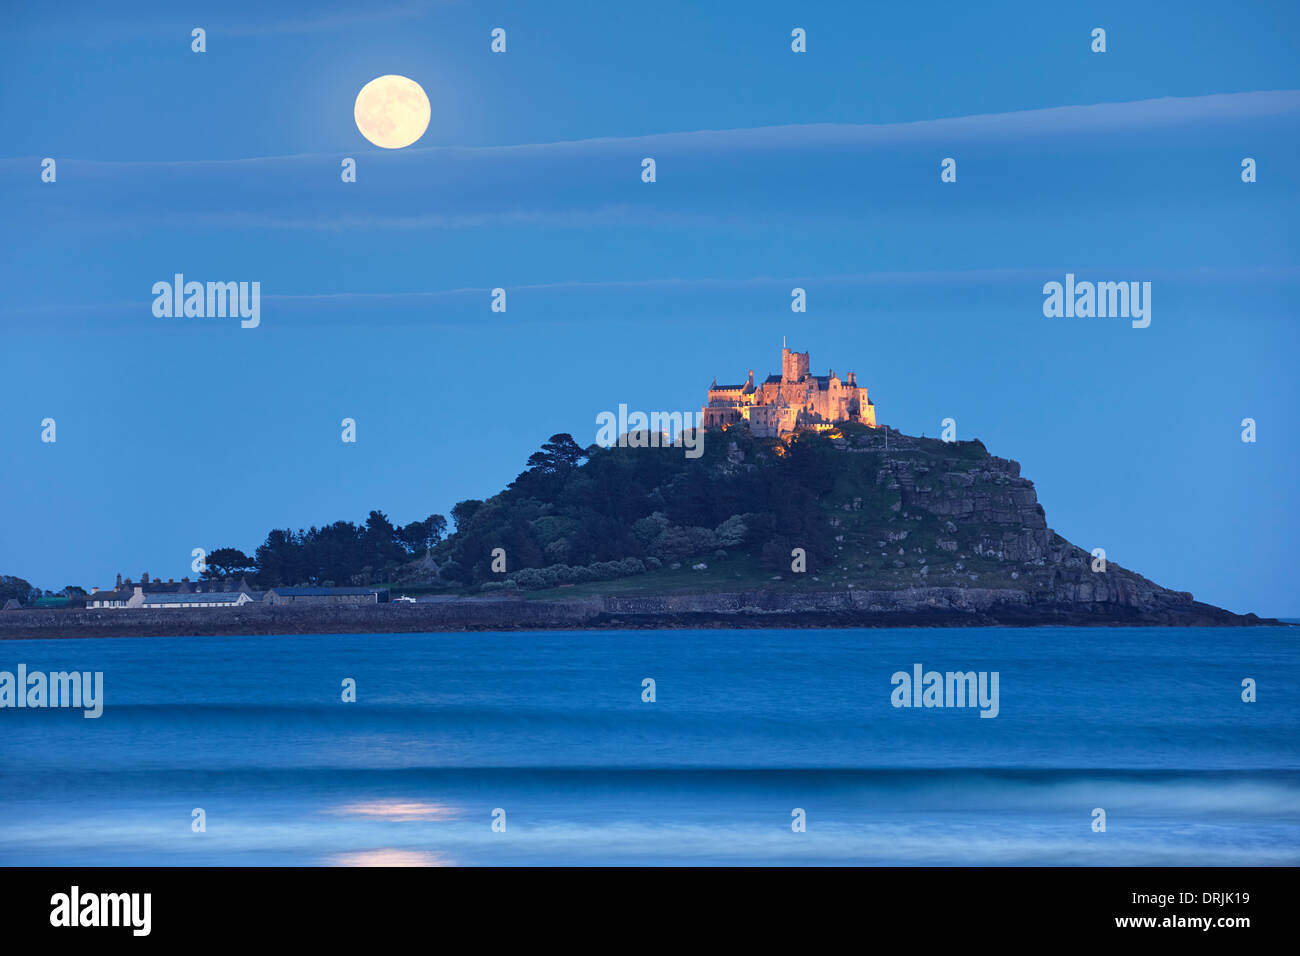 2013 Supermoon rising above St Michael's Mount, Cornwall - Stock Image